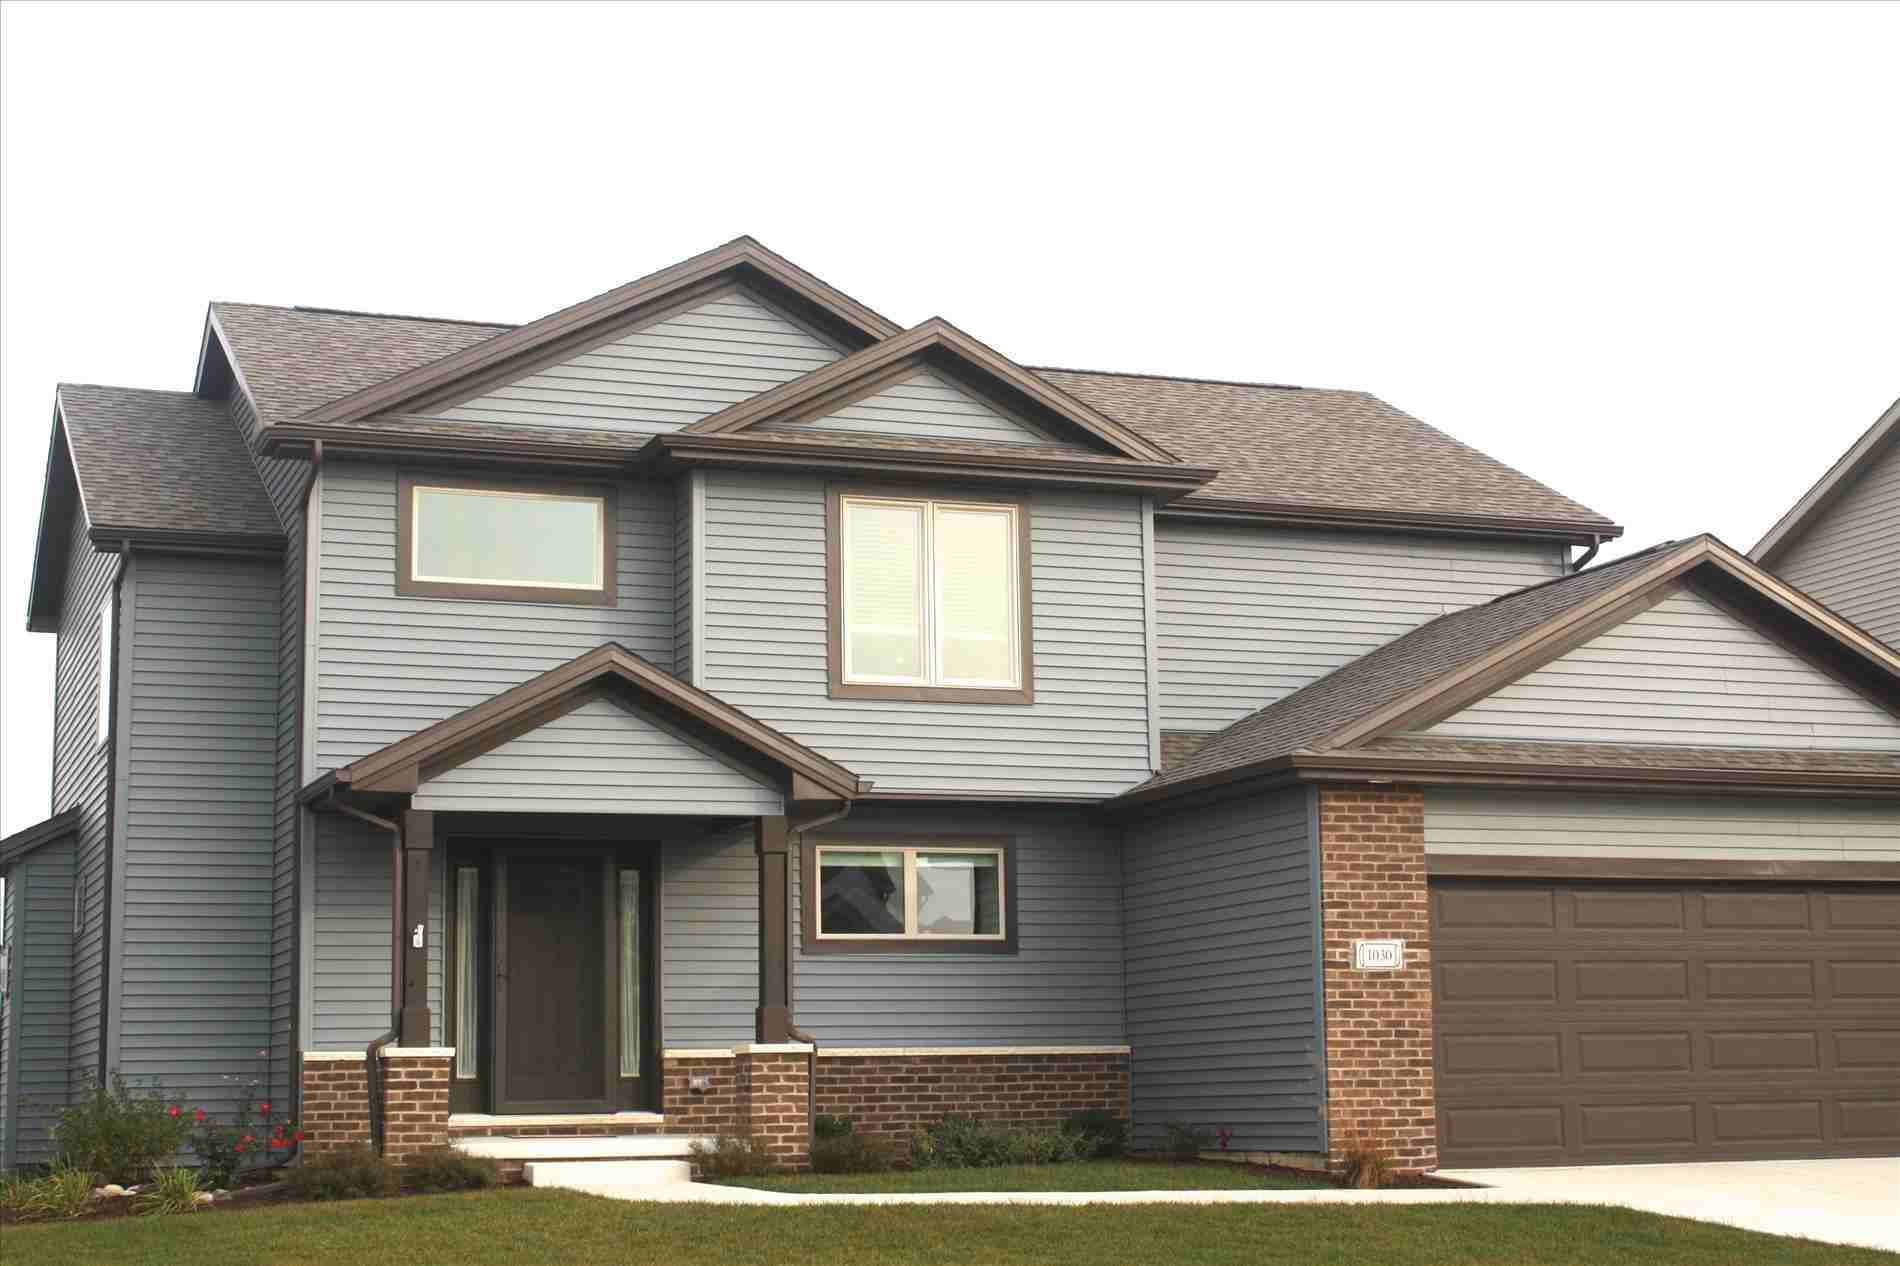 New Post Gray House With Brown Roof Visit Bobayule Trending Decors